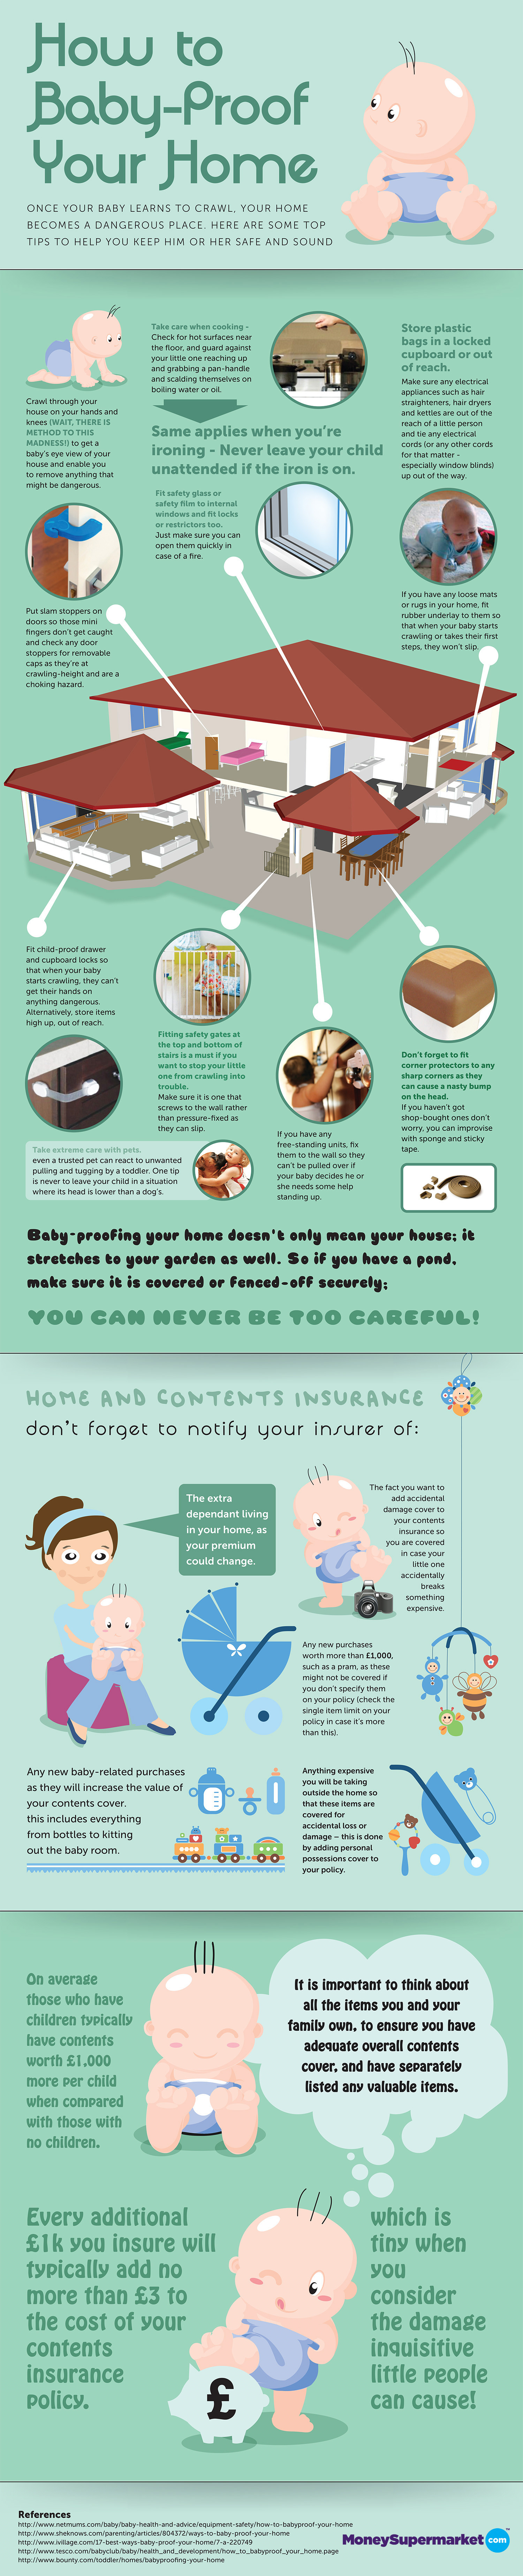 How to Baby-Proof Your Home Infographic